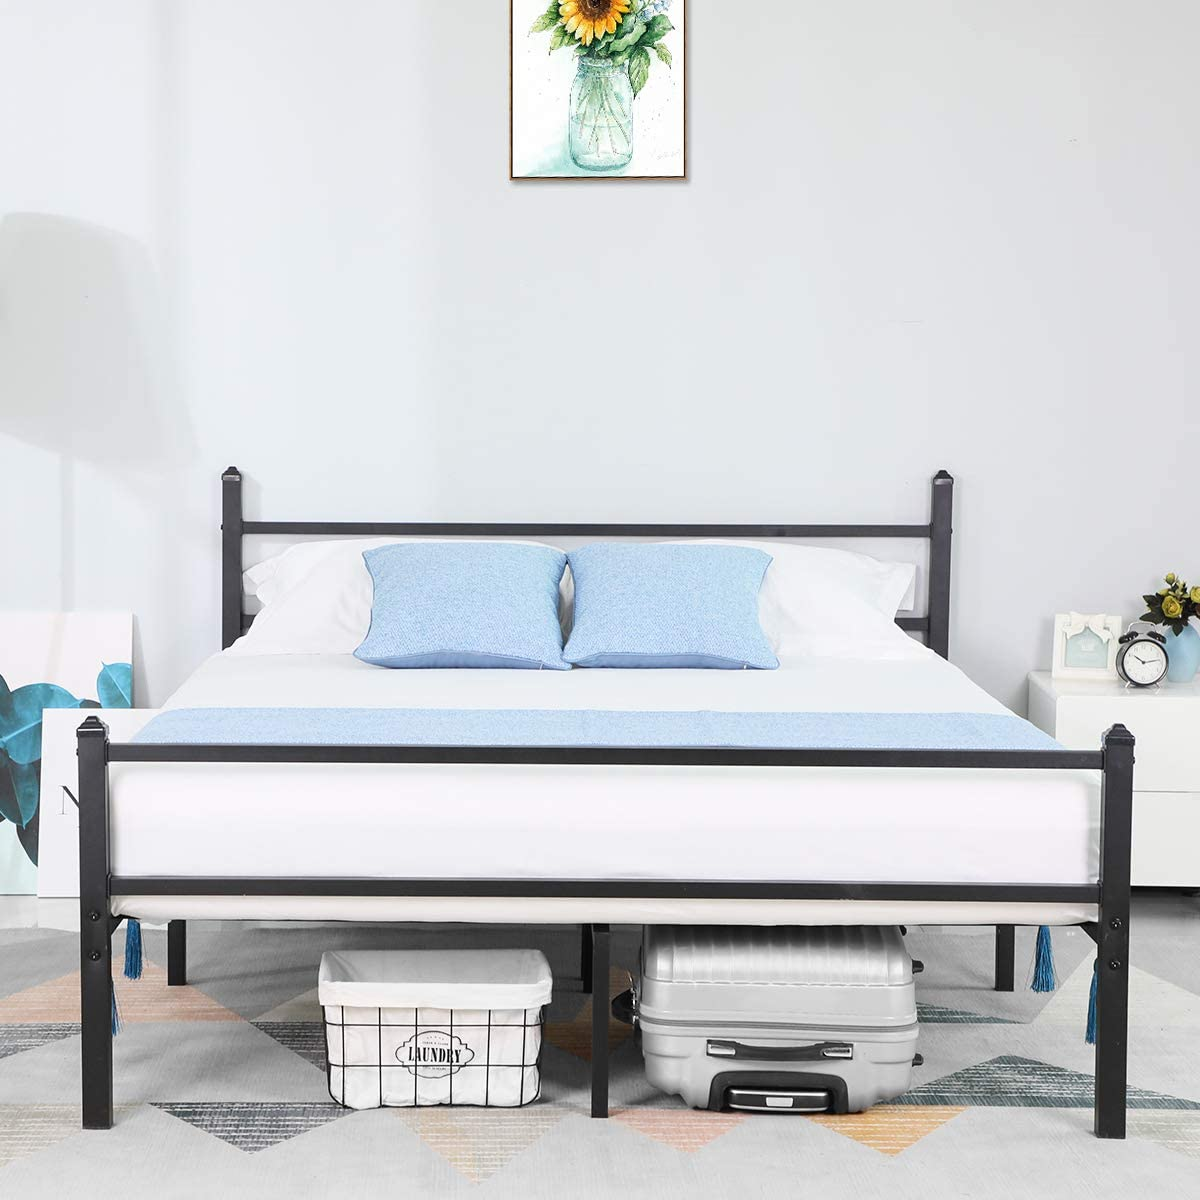 Black Reinforced Modern Studio Box Spring Replacement Mattress Base GreenForest Twin Bed Frame Metal Platform Bed with Headboard and Heavy Duty Steel Slats Support